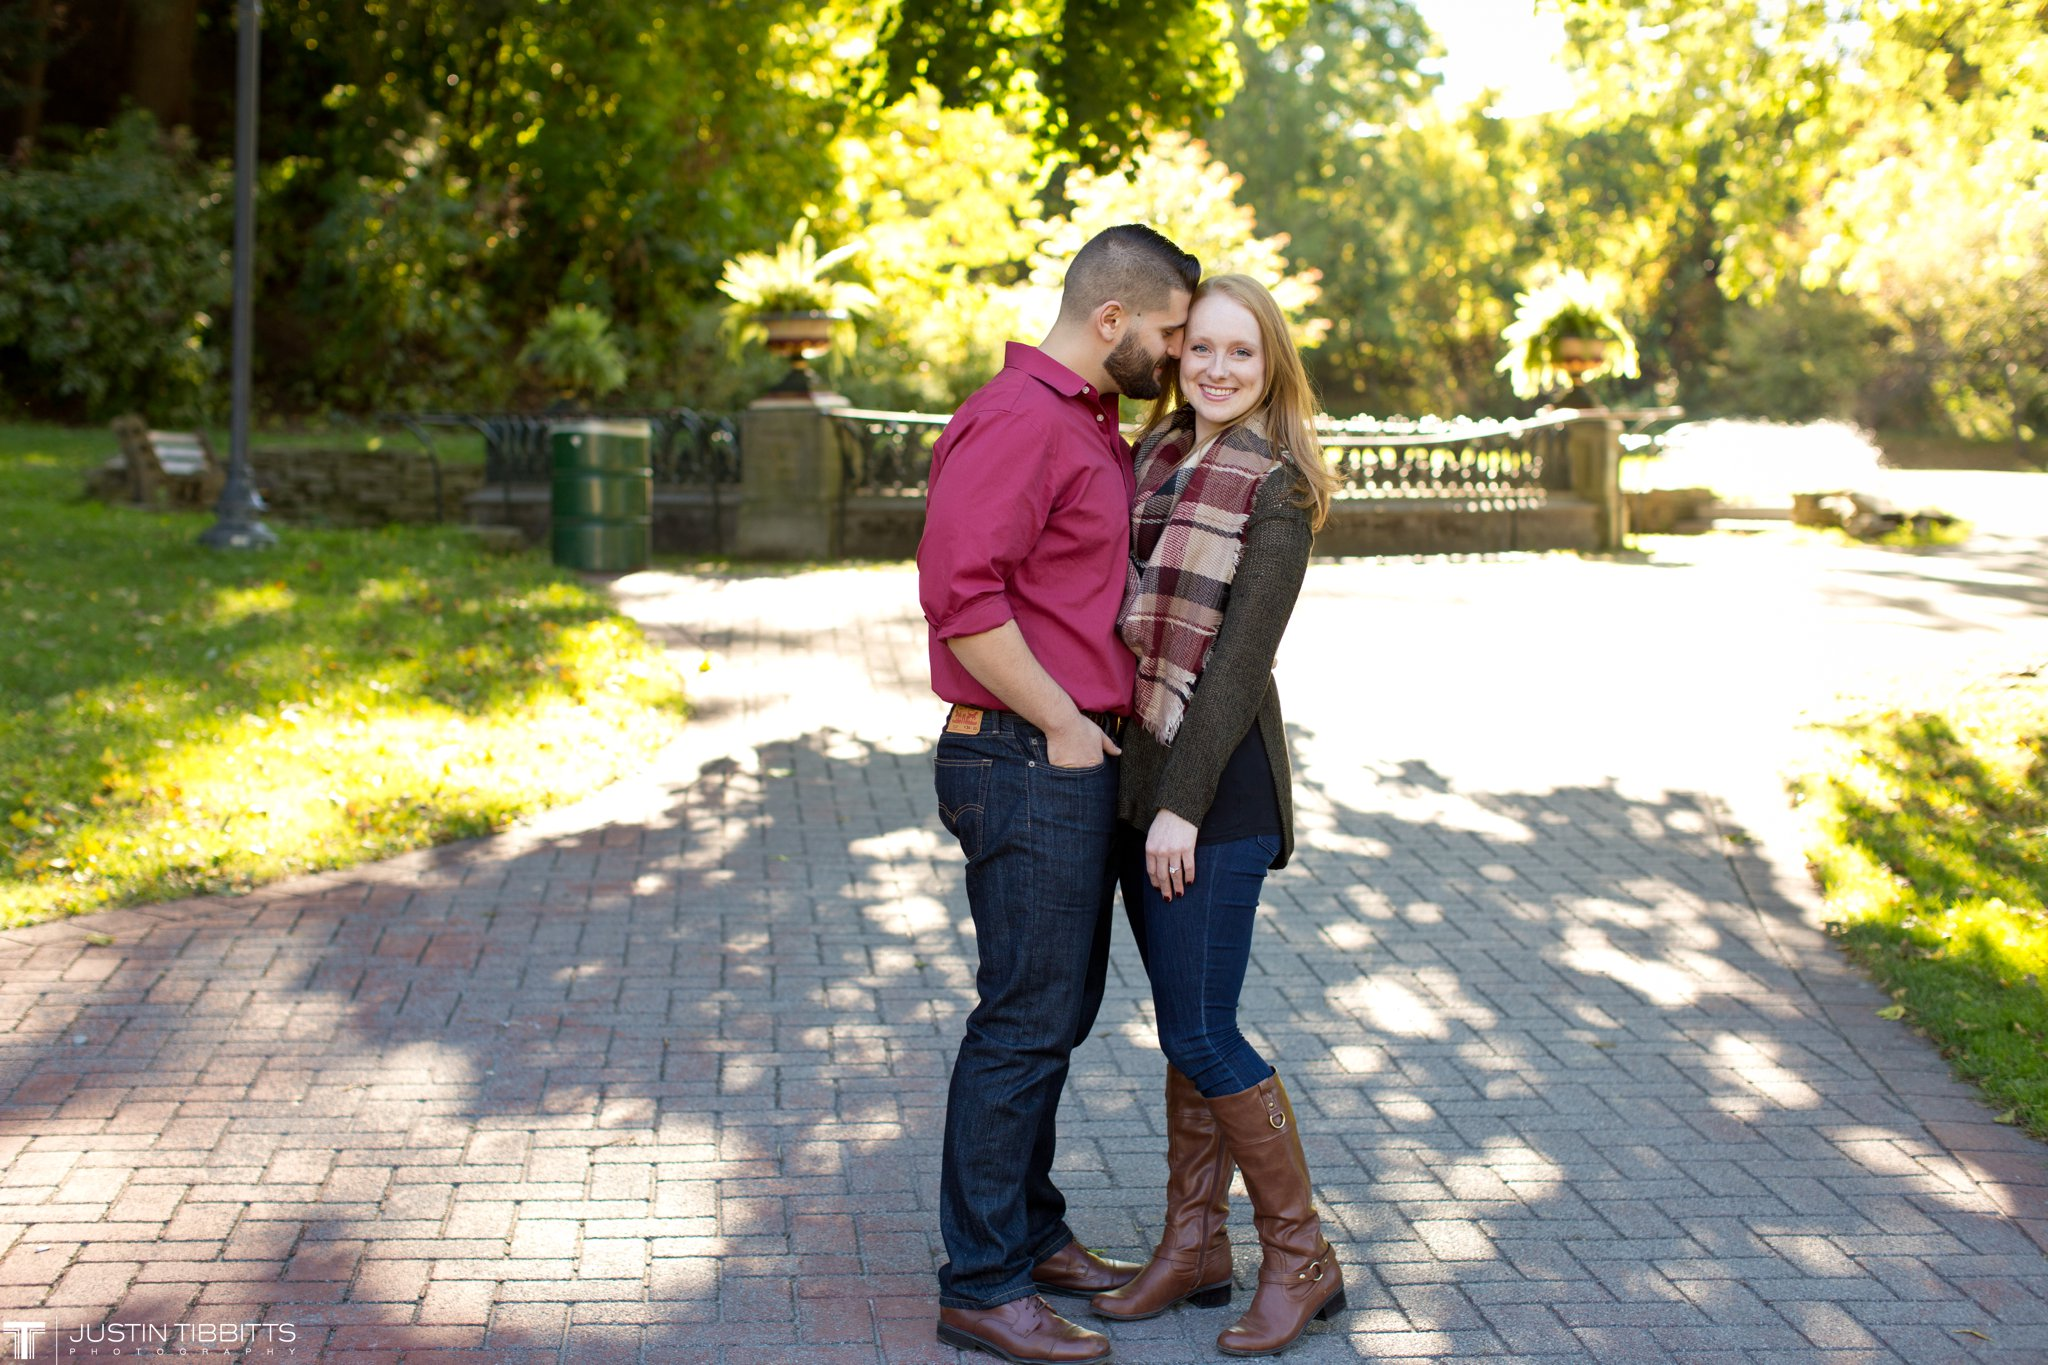 congress-park-saratoga-springs-engagement-photos-with-lauren-and-nick_0001